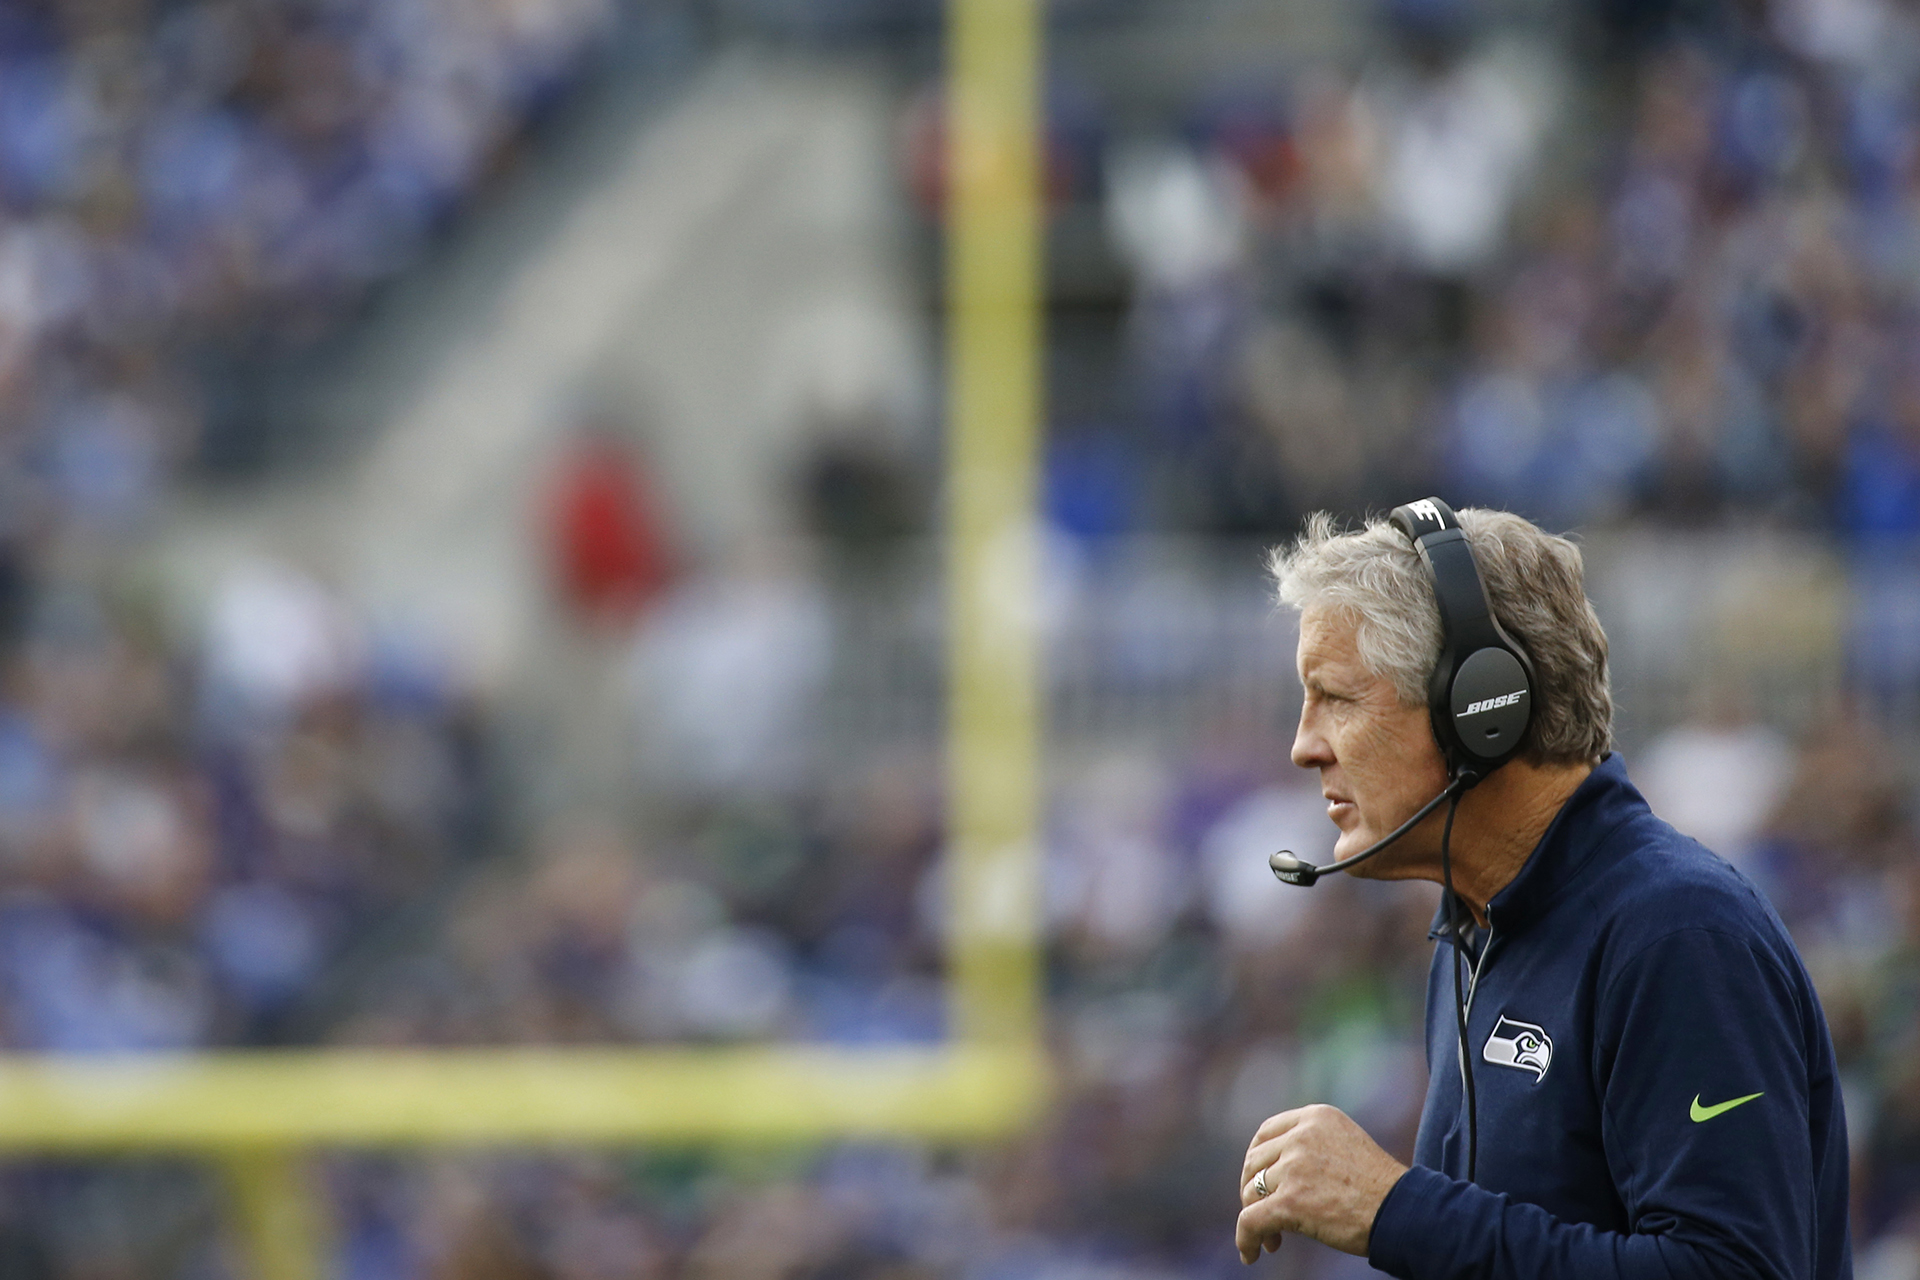 Seattle Seahawks head coach Pete Carroll walks on the field in the second half an NFL football game against the Baltimore Ravens, Sunday, Dec. 13, 2015, in Baltimore. (AP Photo/Patrick Semansky)